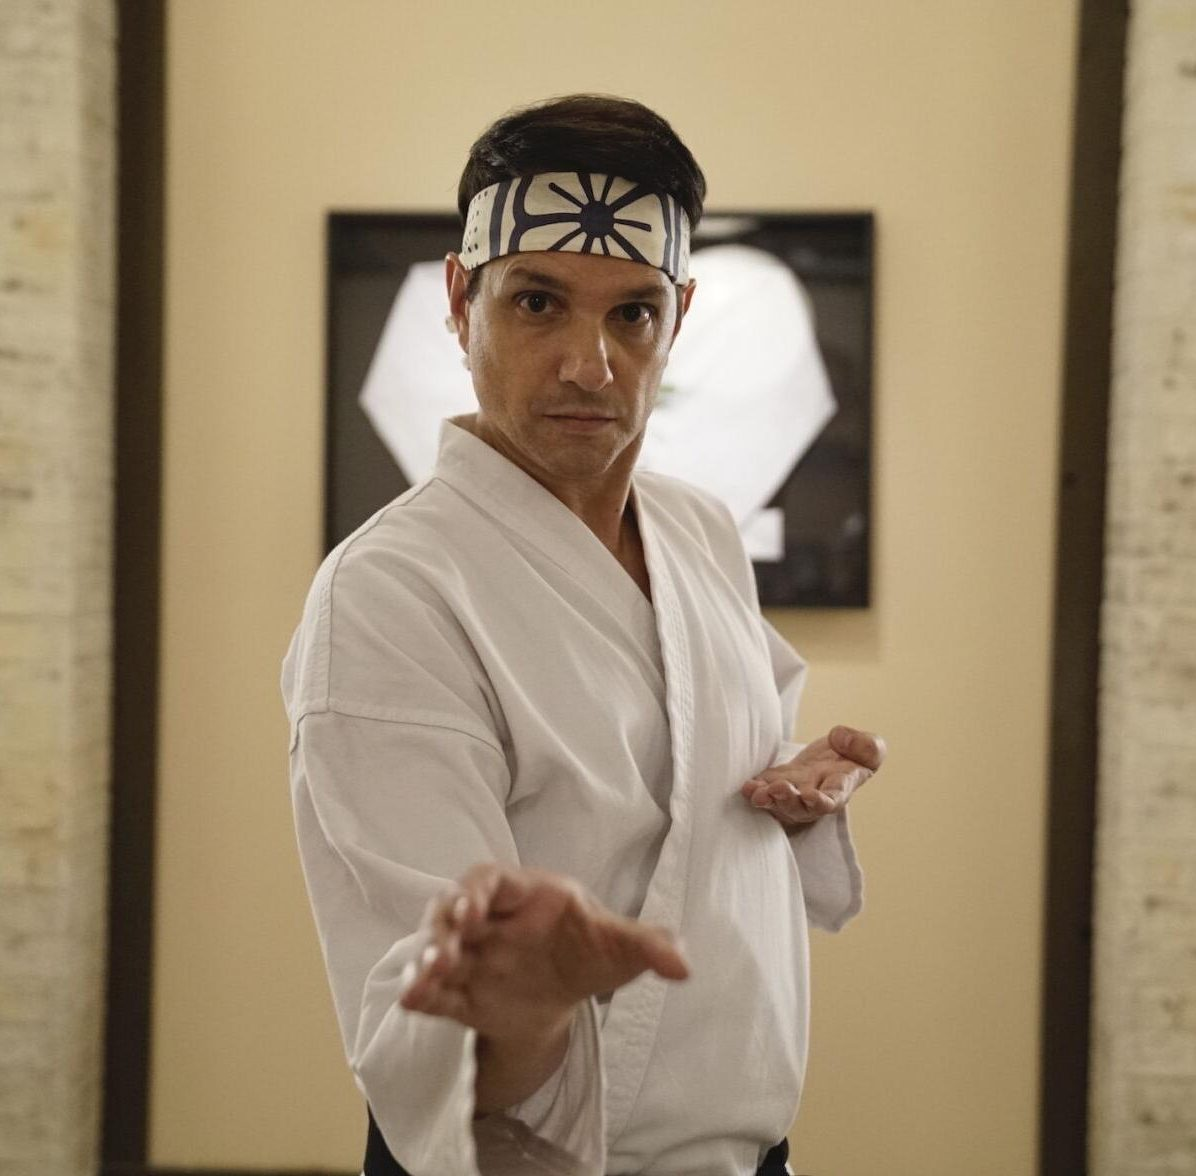 1 16 e1605184372961 30 Things You Might Not Have Known About Cobra Kai